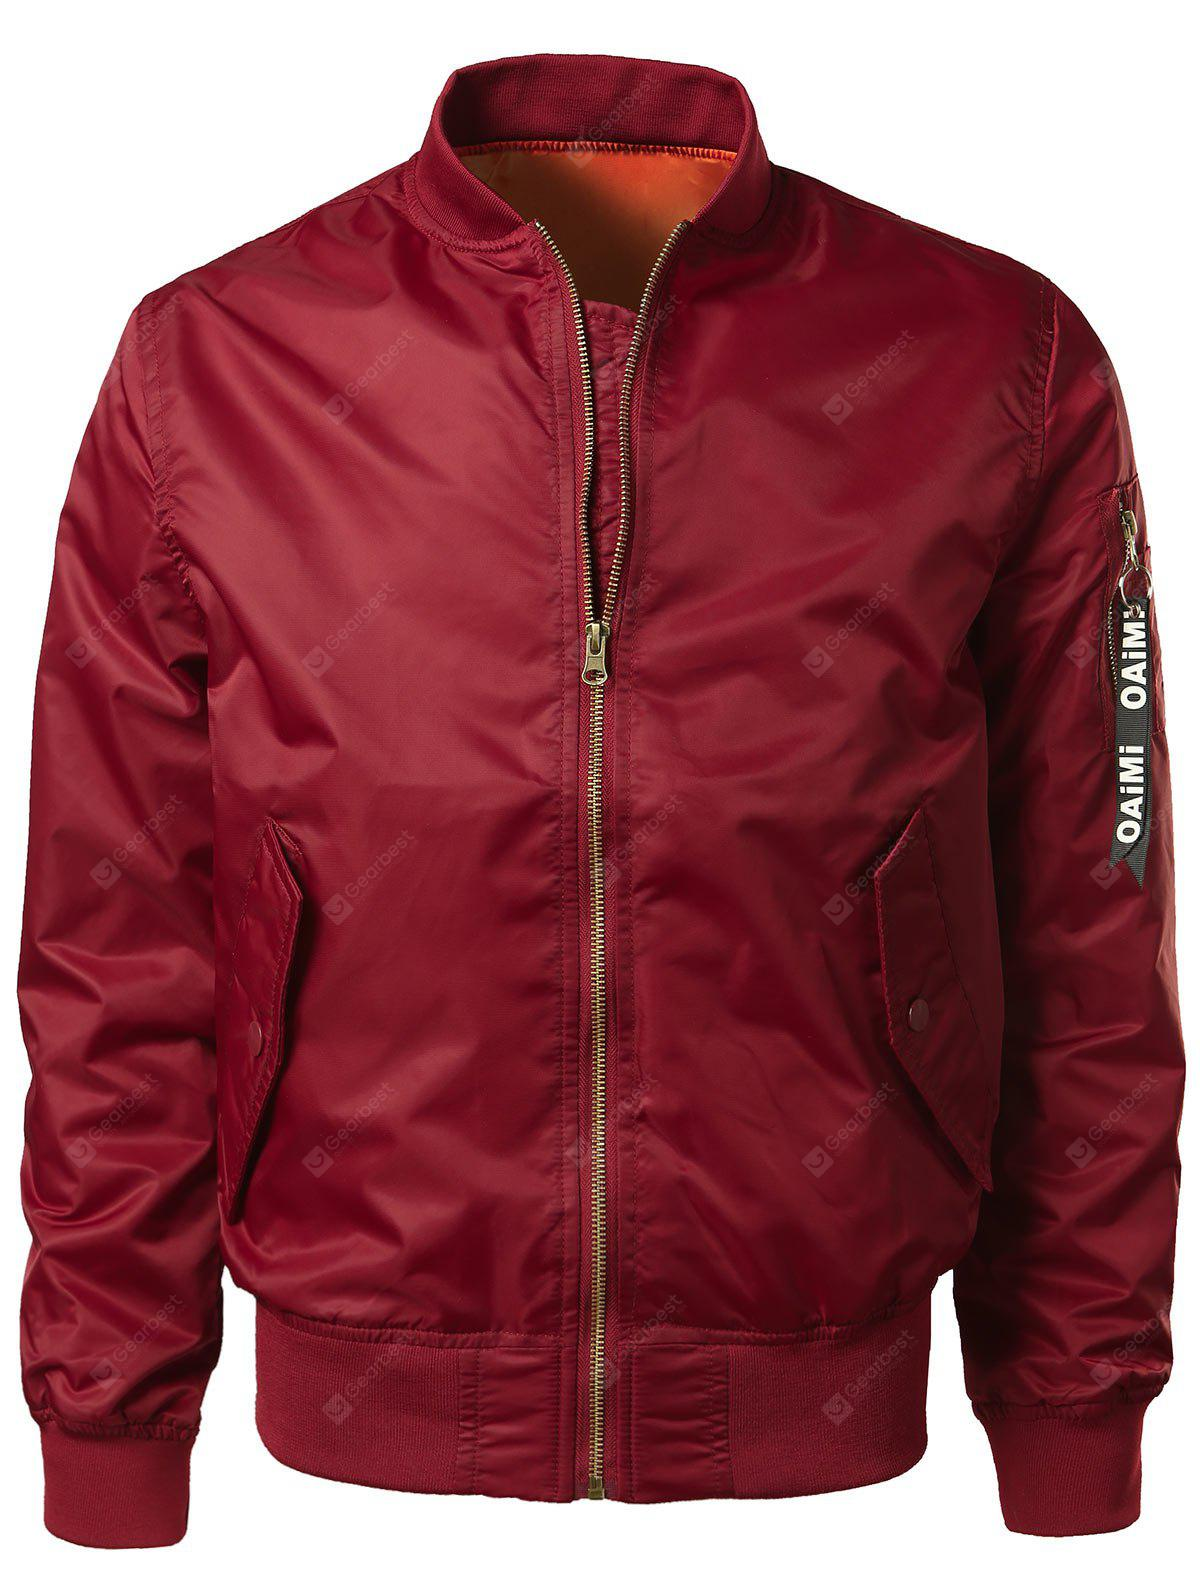 Zip Up Bomber Jacket with Pocket Detail